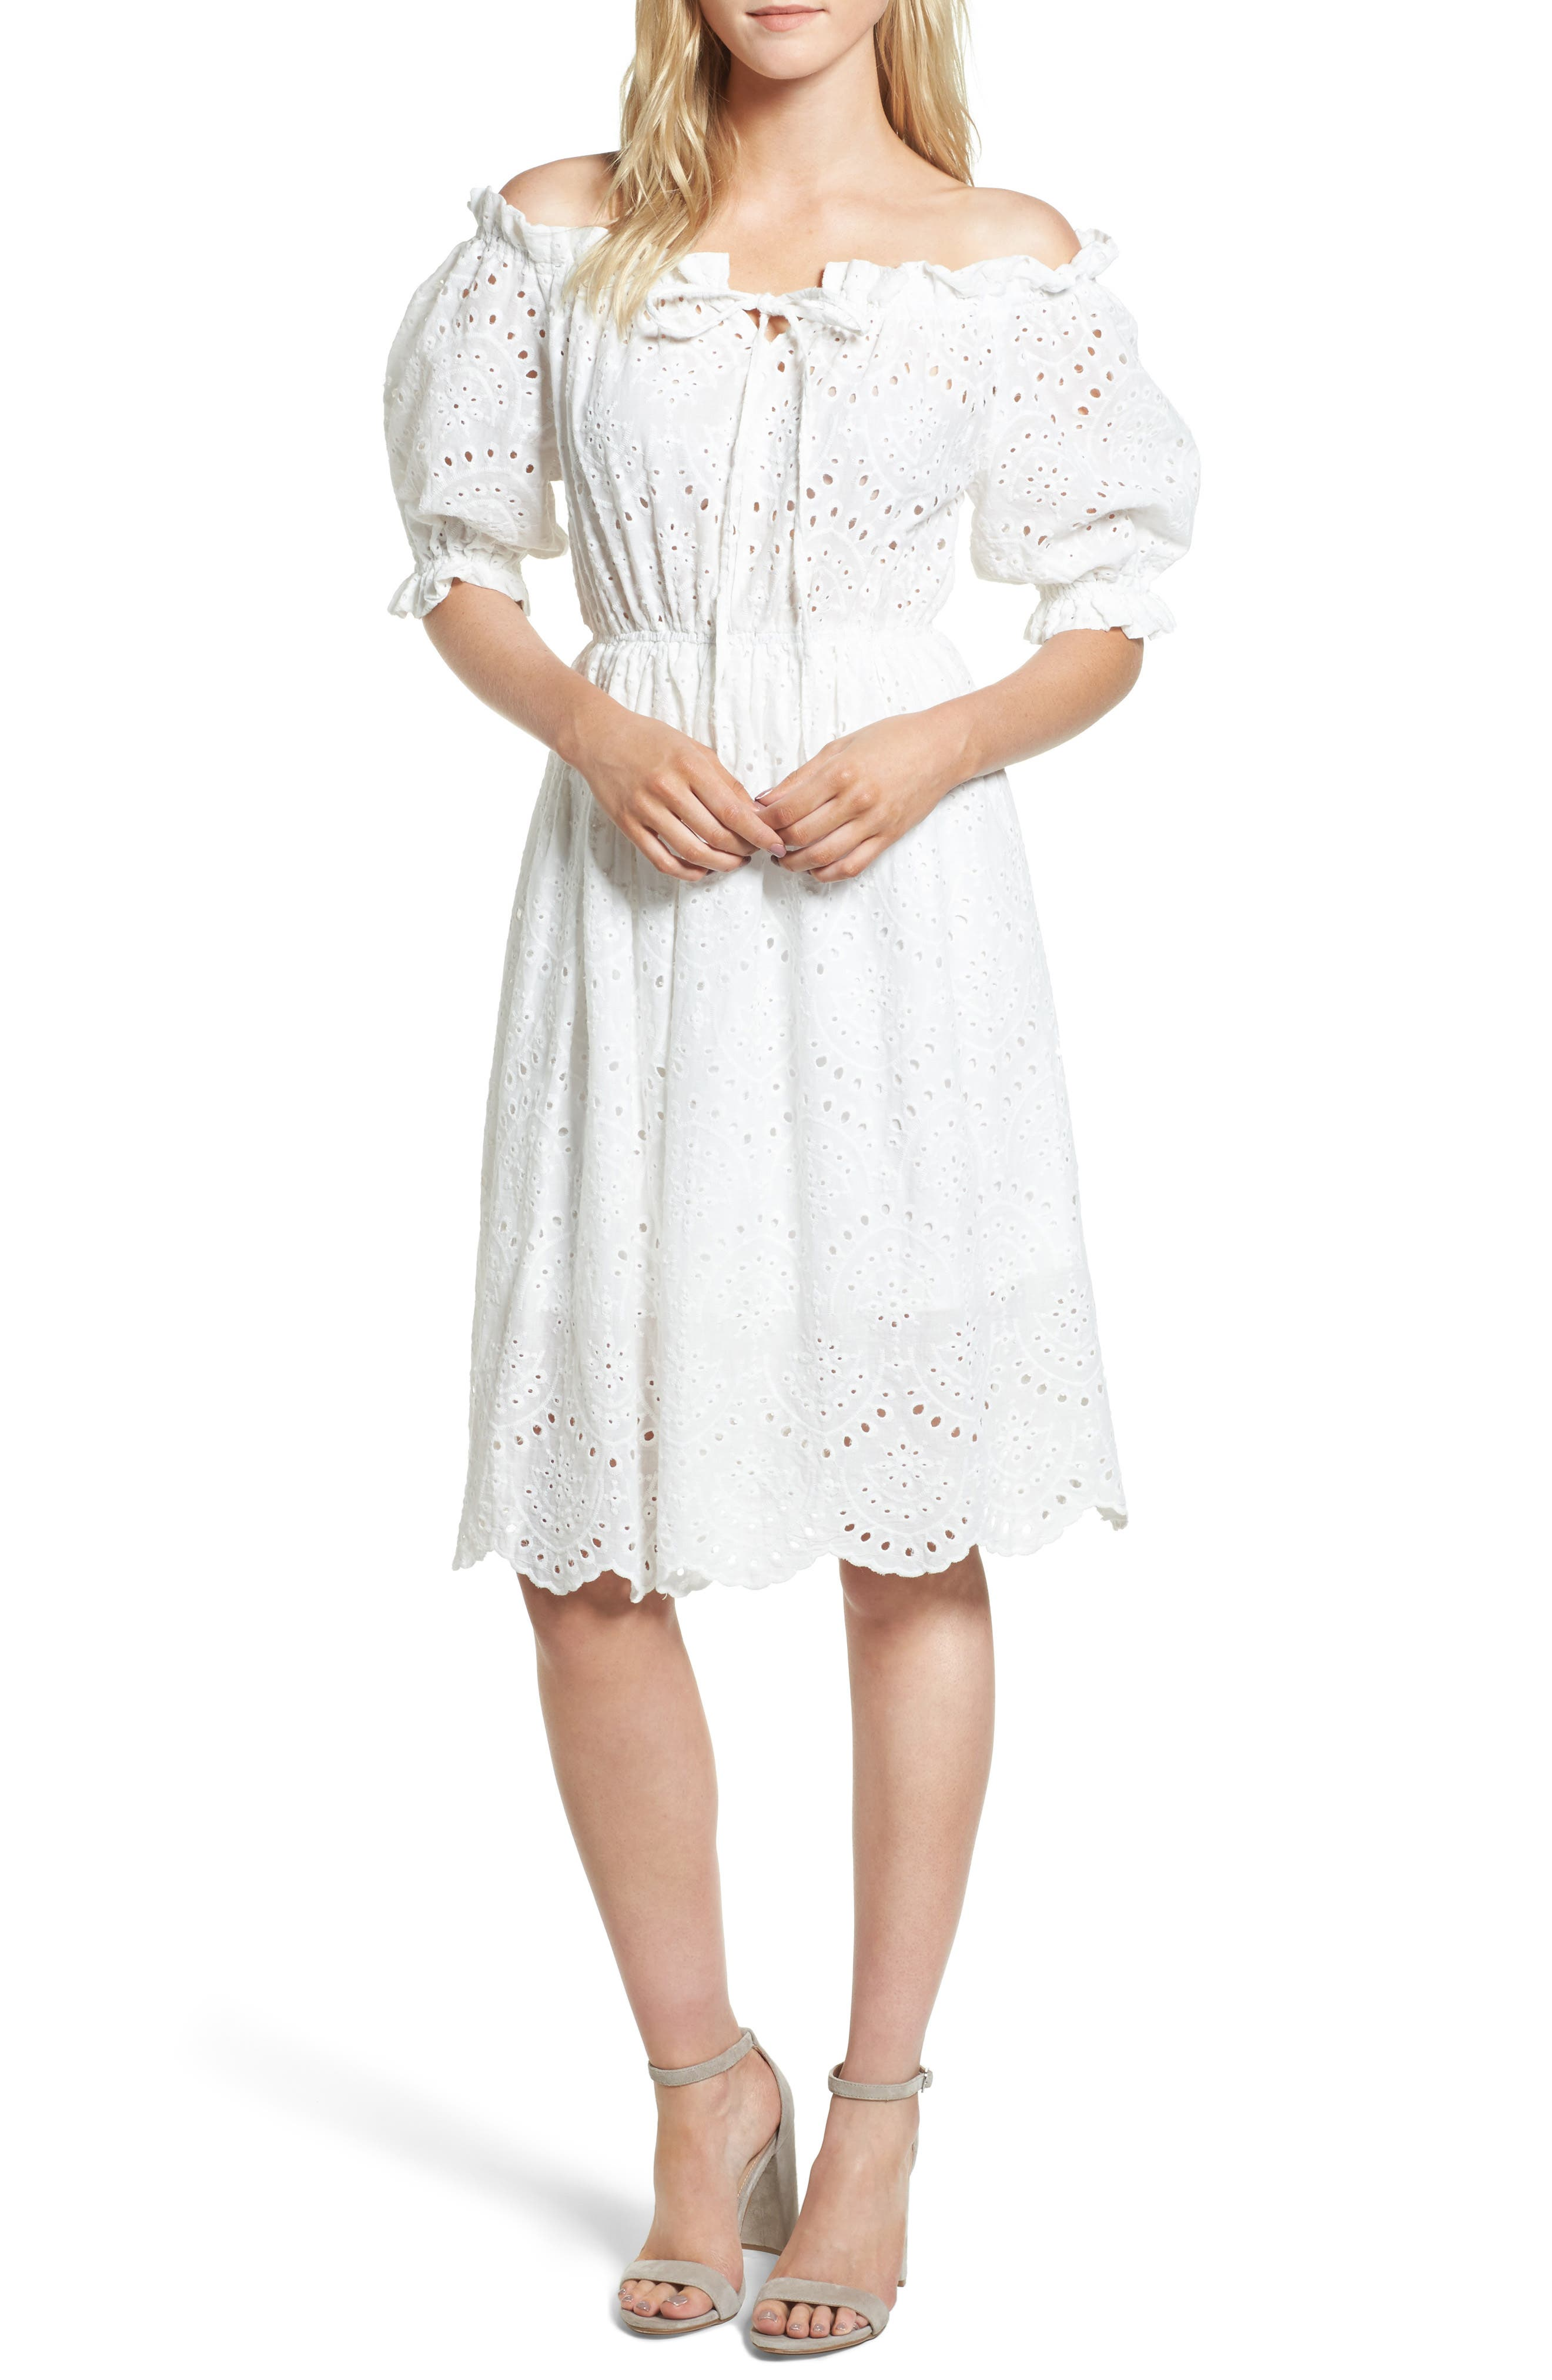 The White Party Off the Shoulder Dress,                         Main,                         color, 100